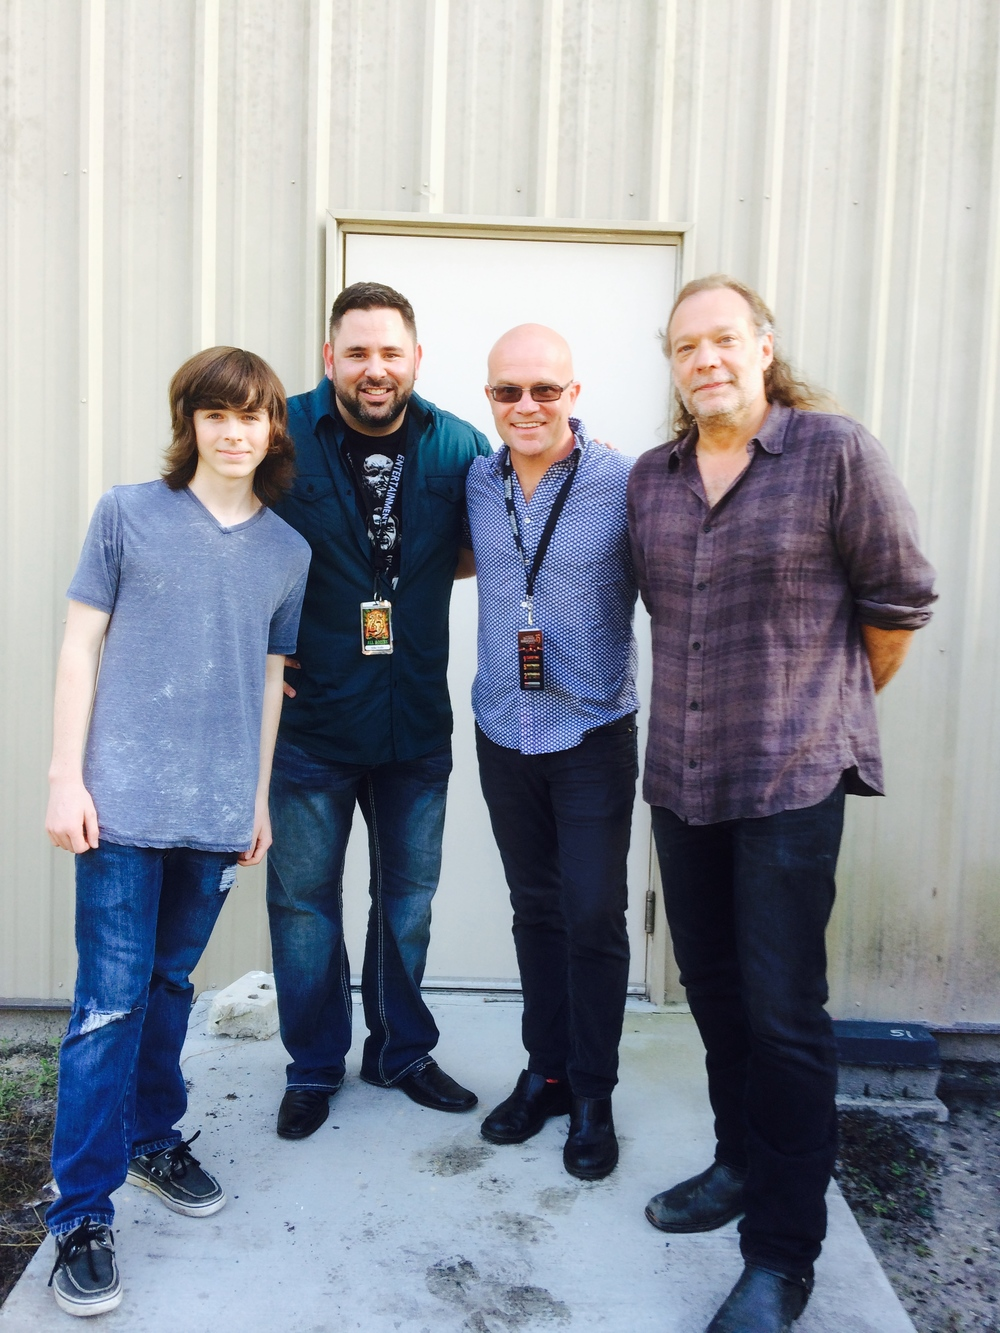 Left to right: Chandler Riggs, Mike Aiello, Jon Waterhouse and Greg Nicotero.